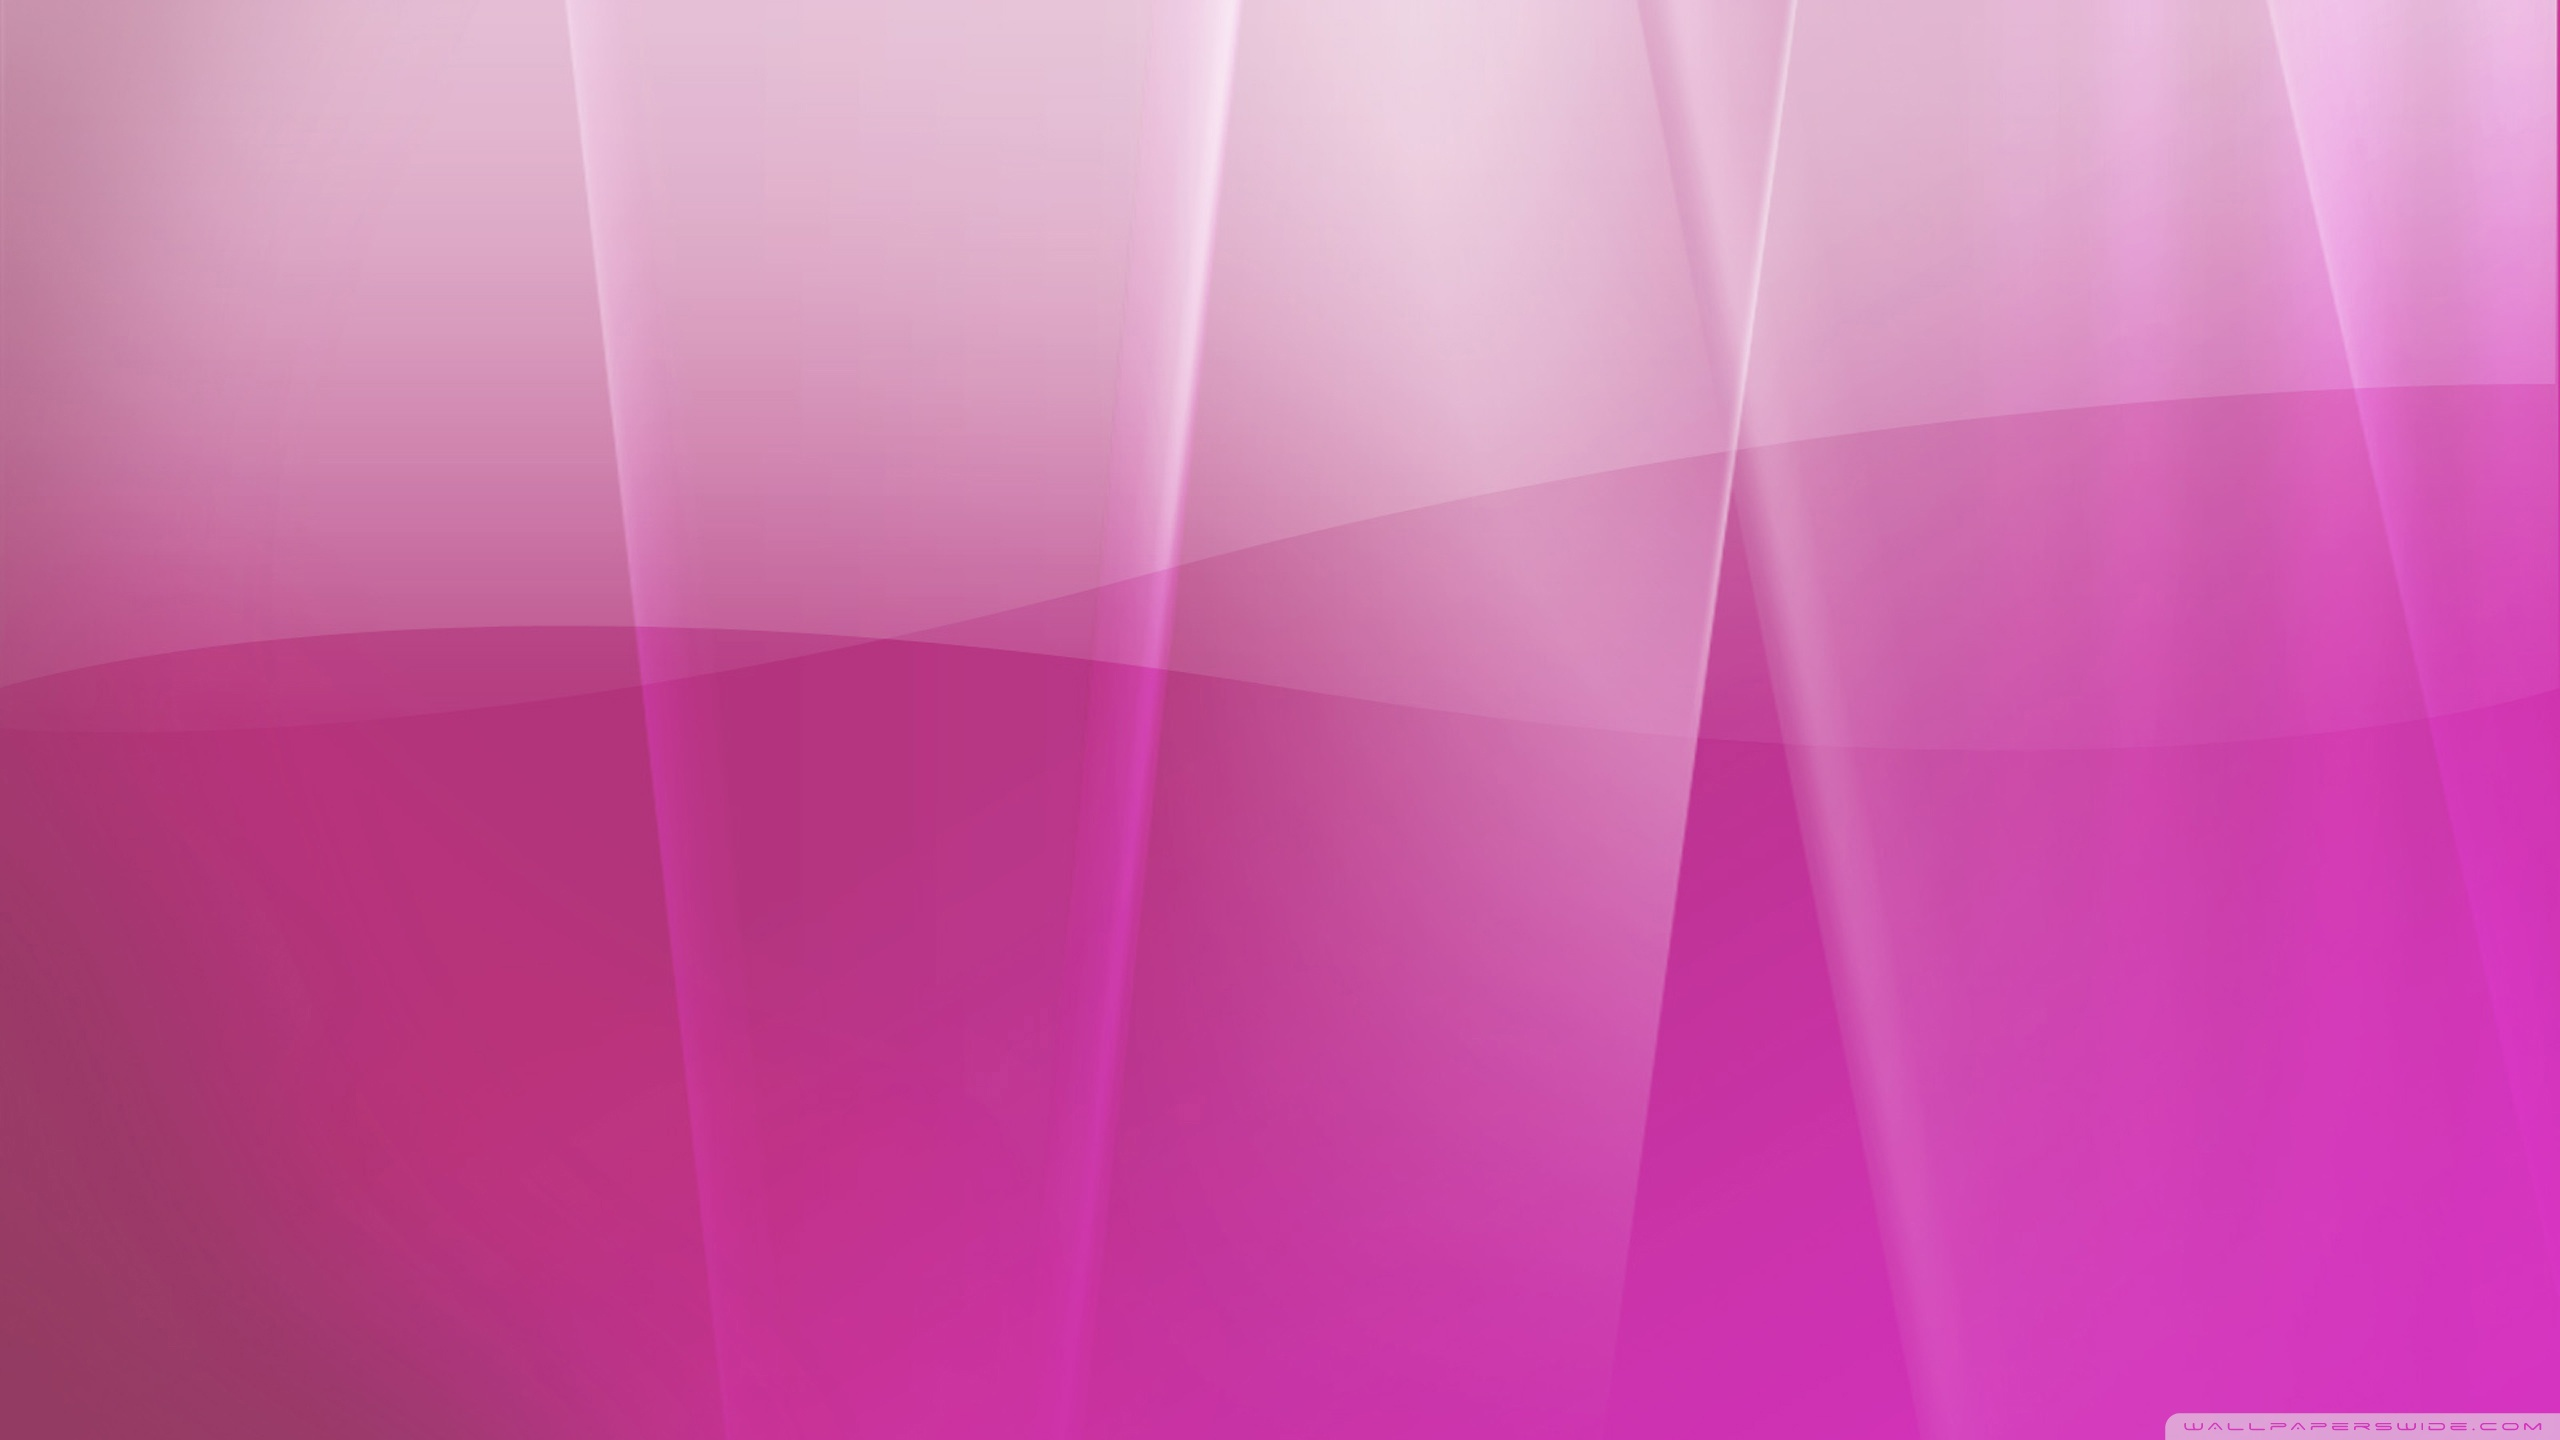 Hd Pink Backgrounds Sf Wallpaper